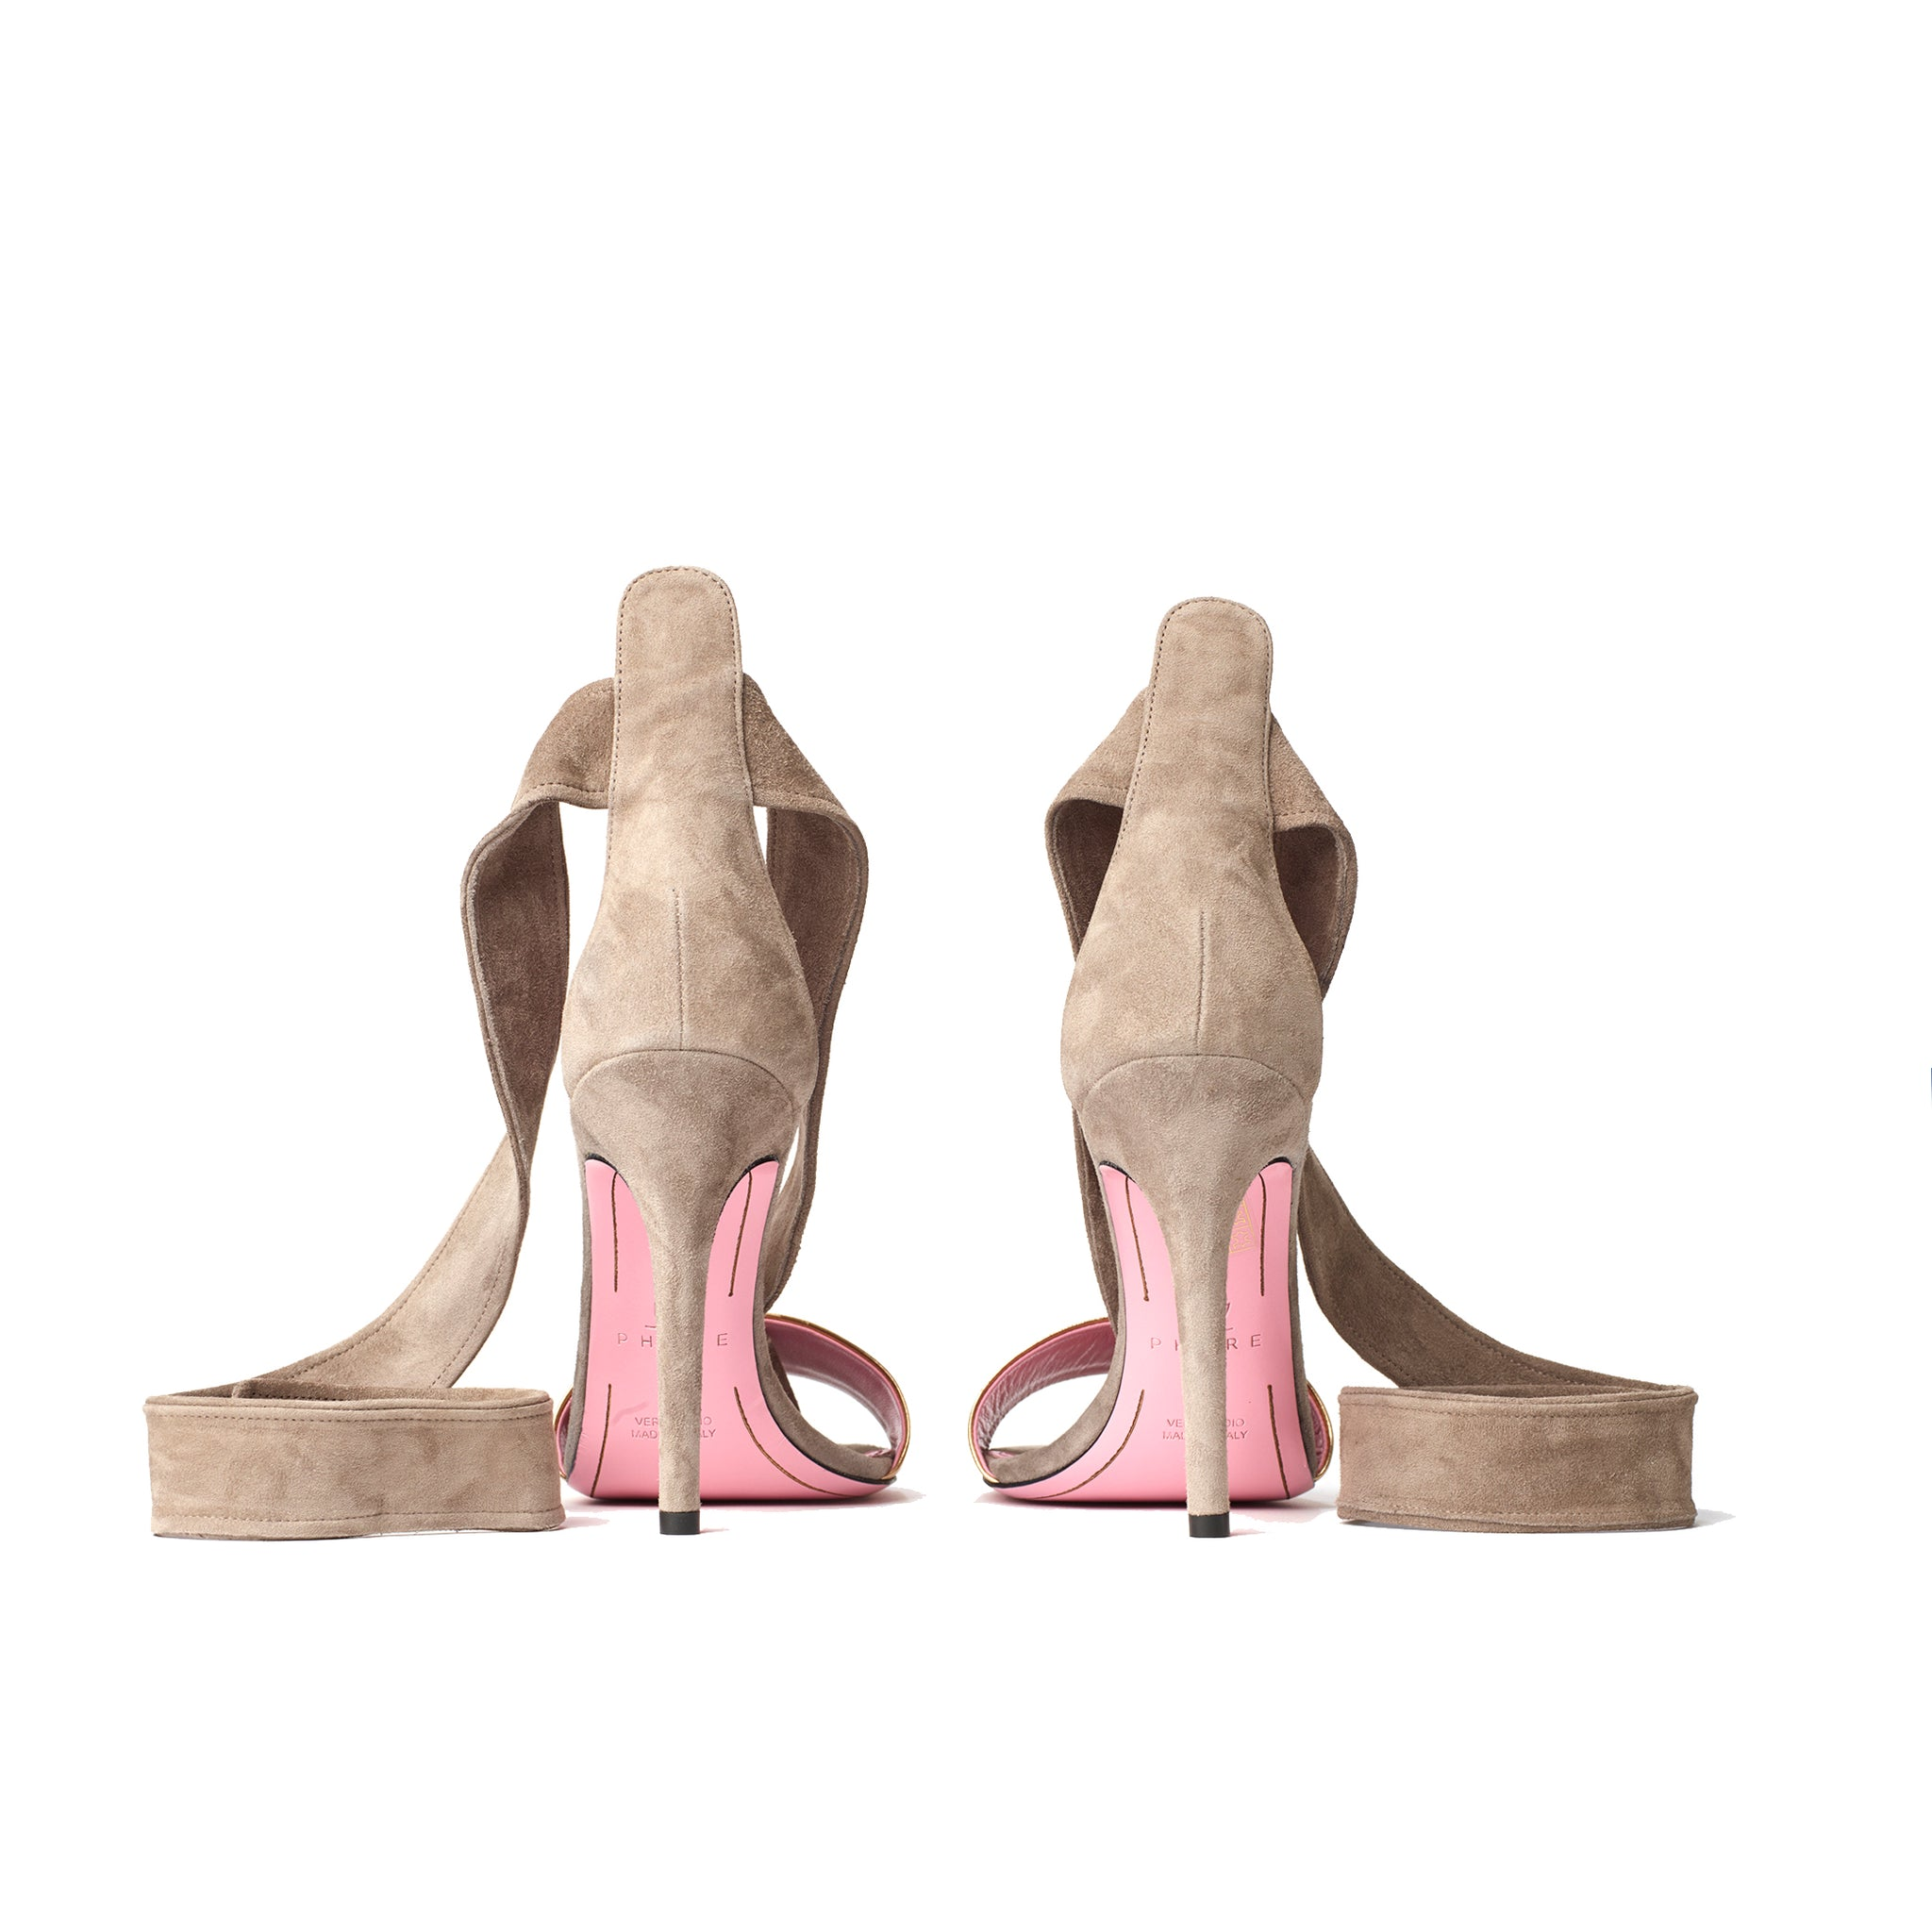 Phare Ankle tie stiletto in taupe suede back view